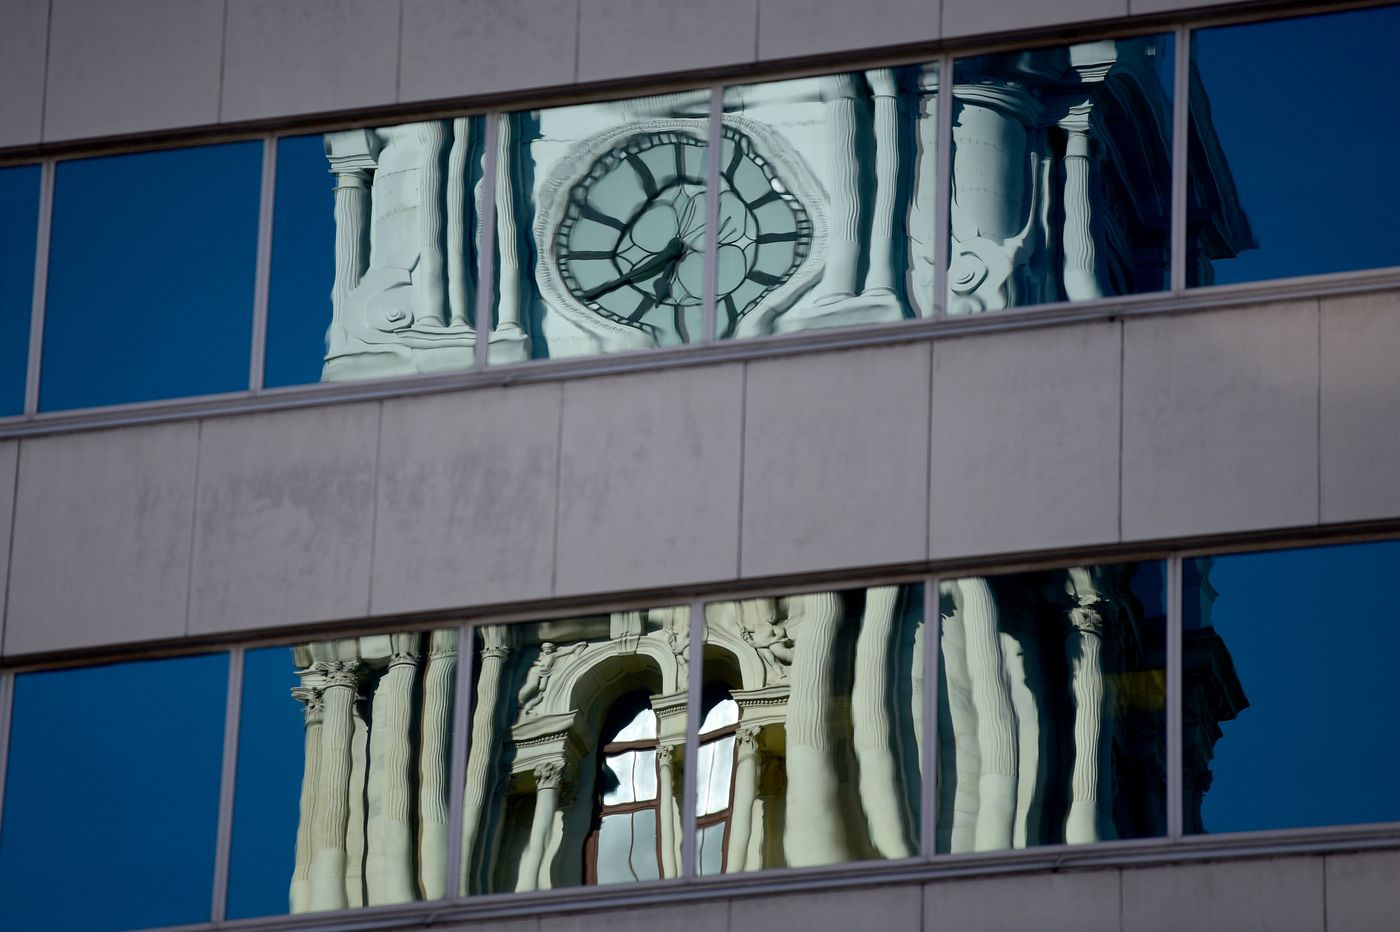 Philadelphia's payroll system debacle should be an outrage to all taxpayers | Editorial